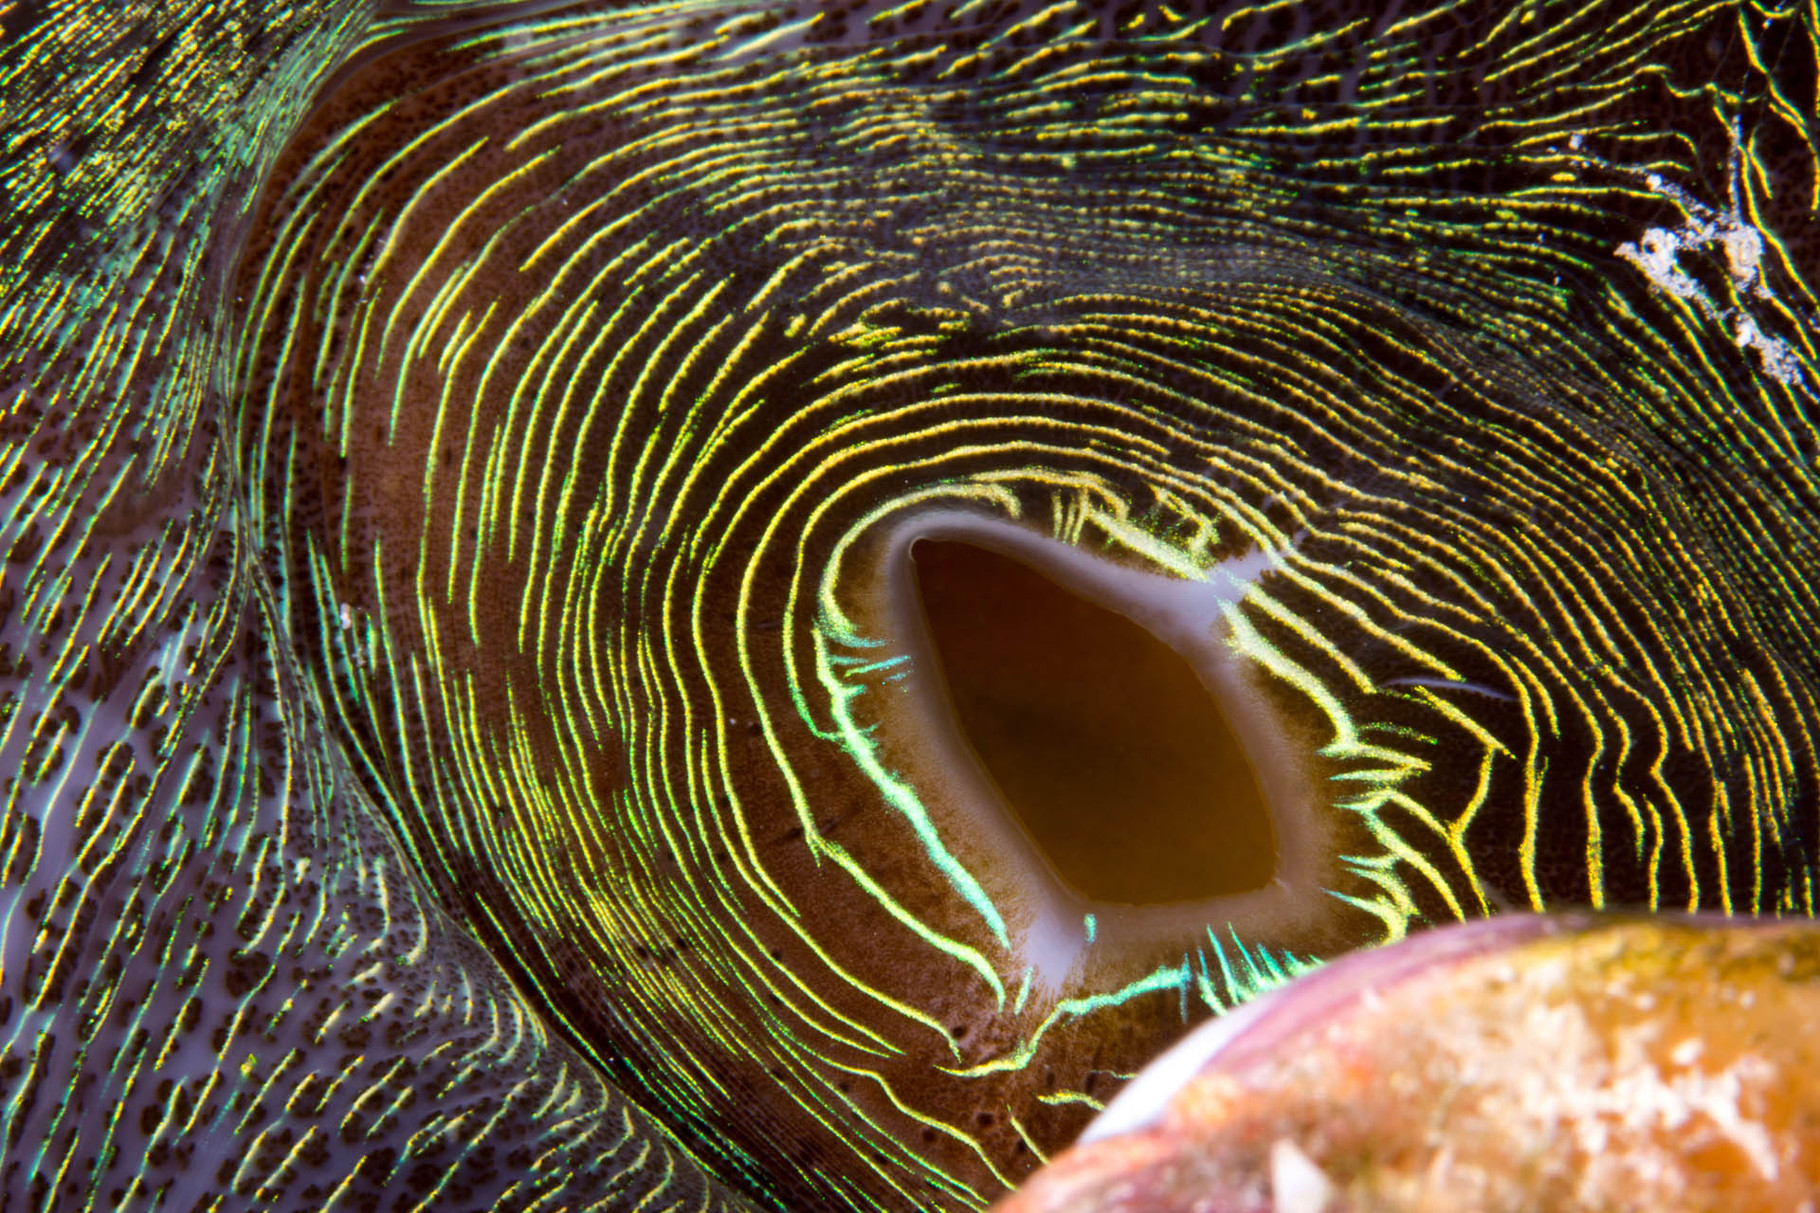 Close up of the mouth of a giant clam, Isle des pines